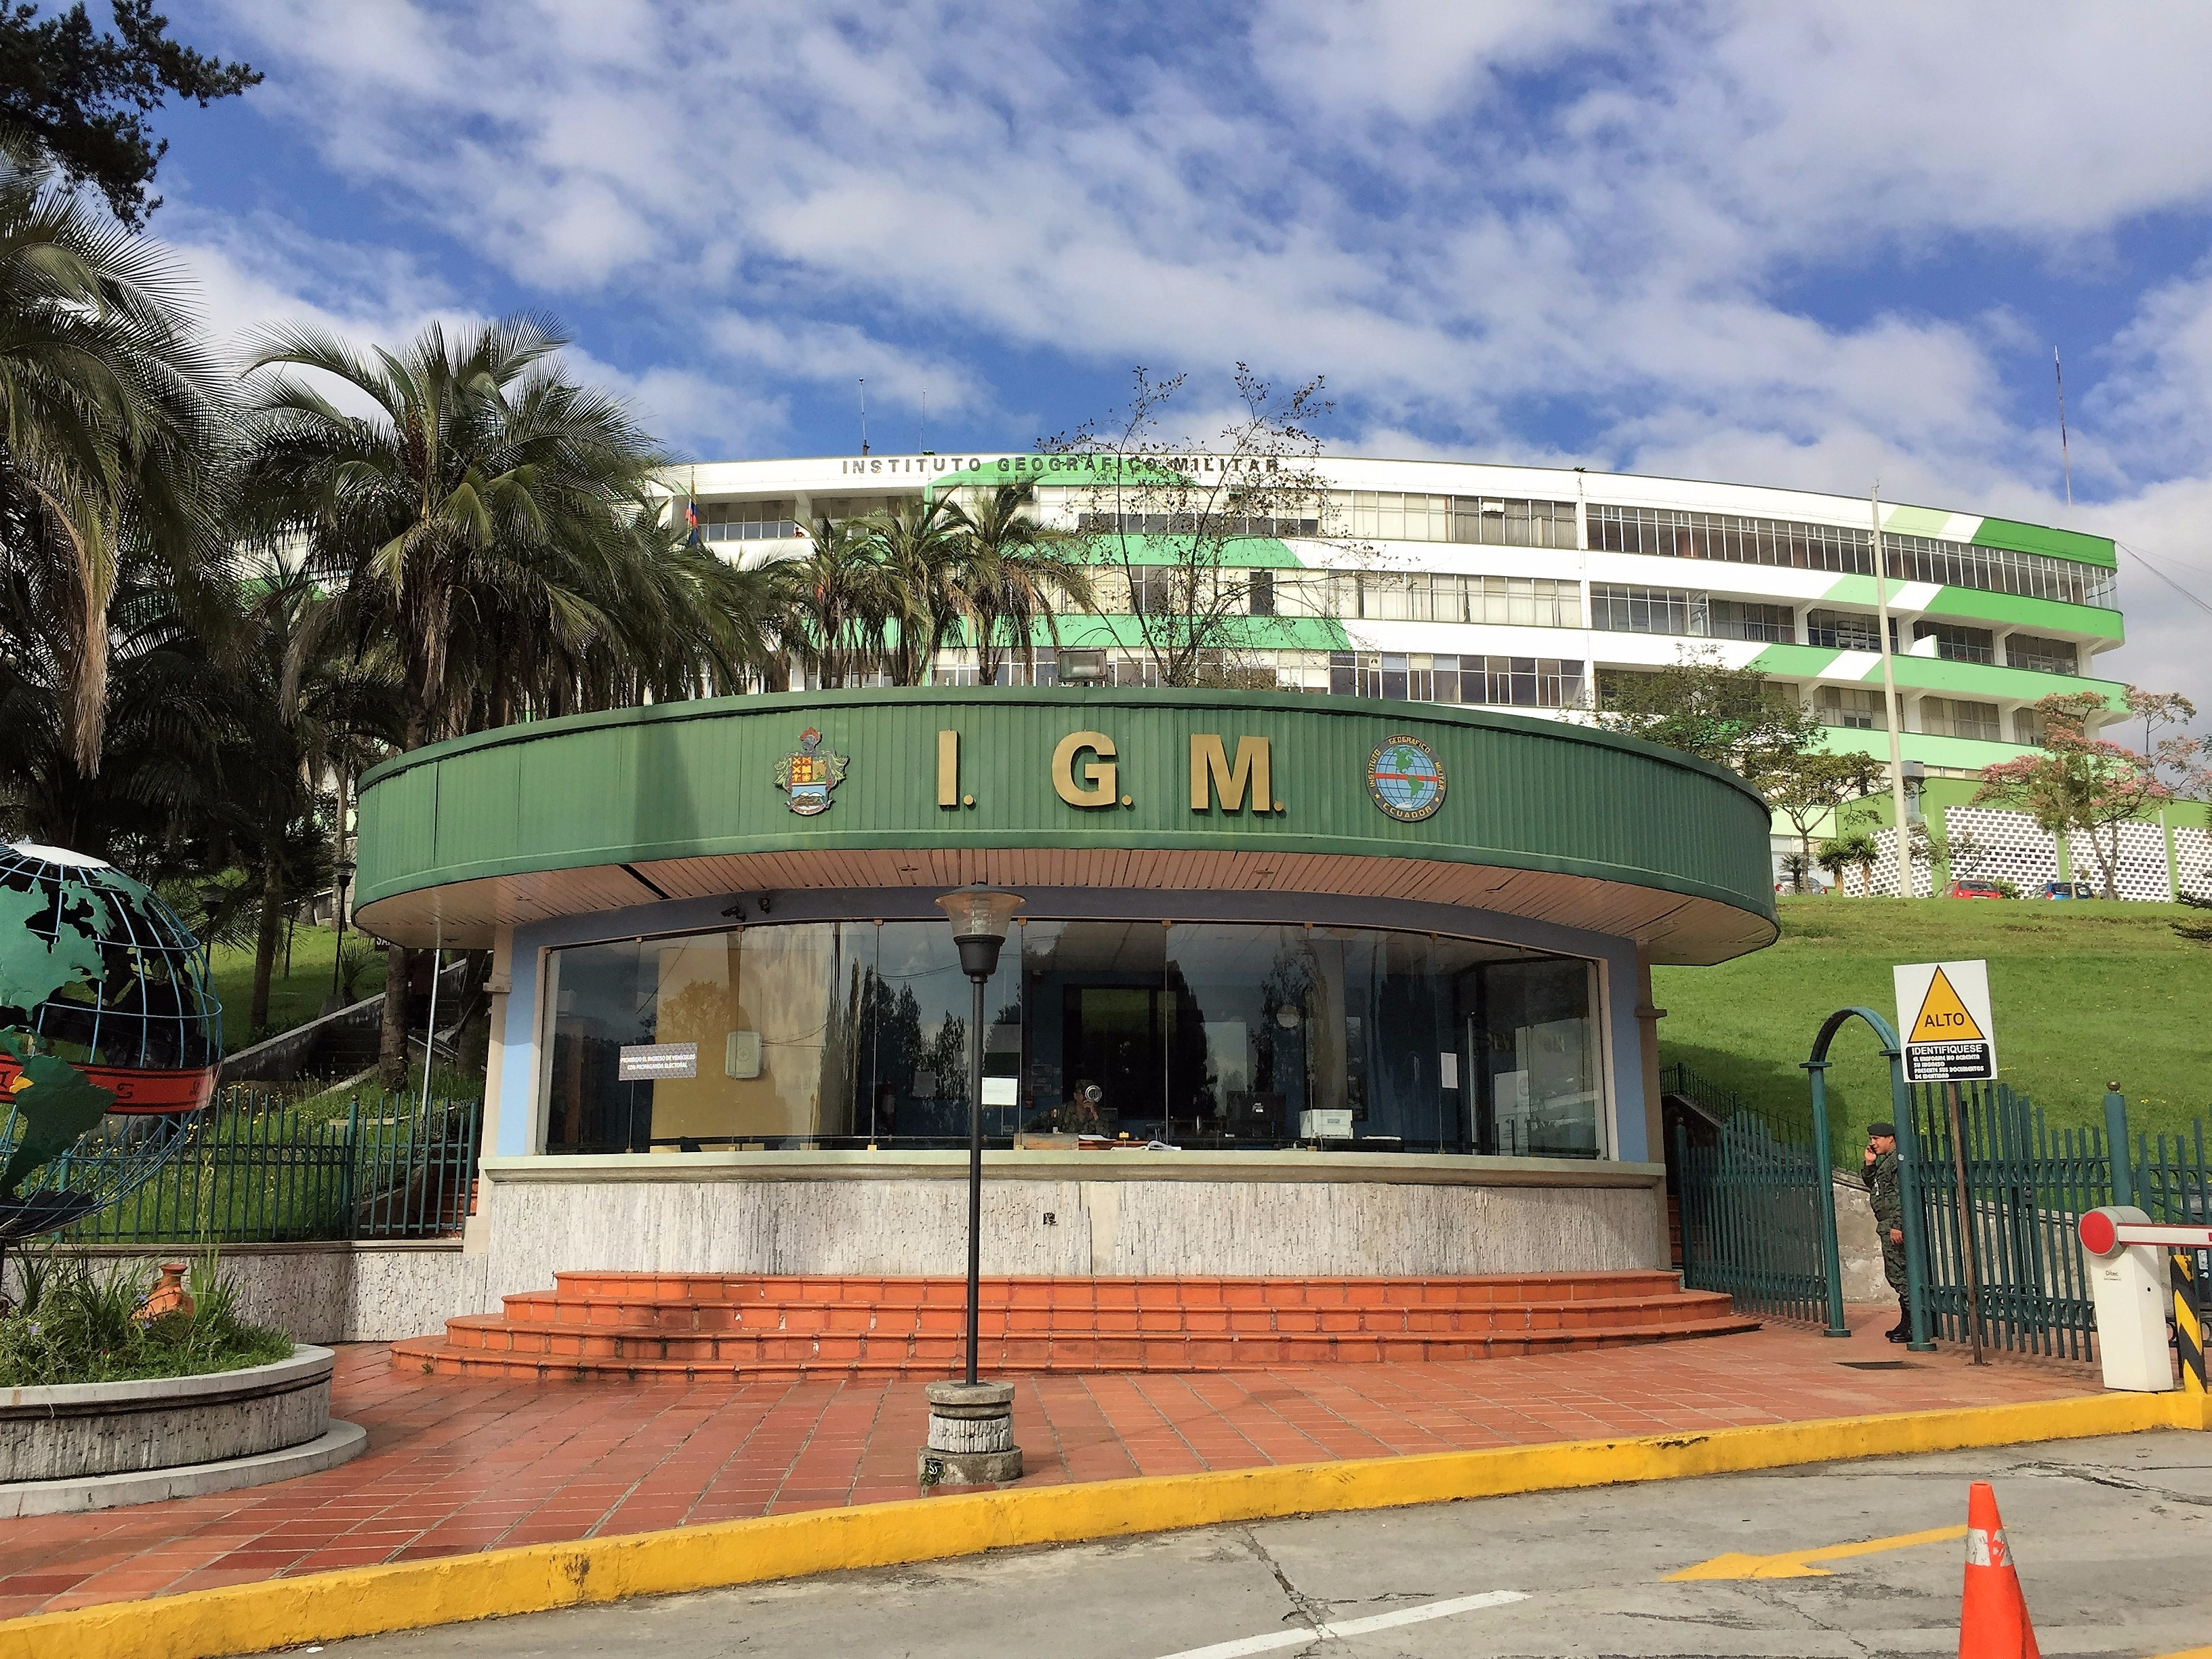 IGM Headquarters Quito